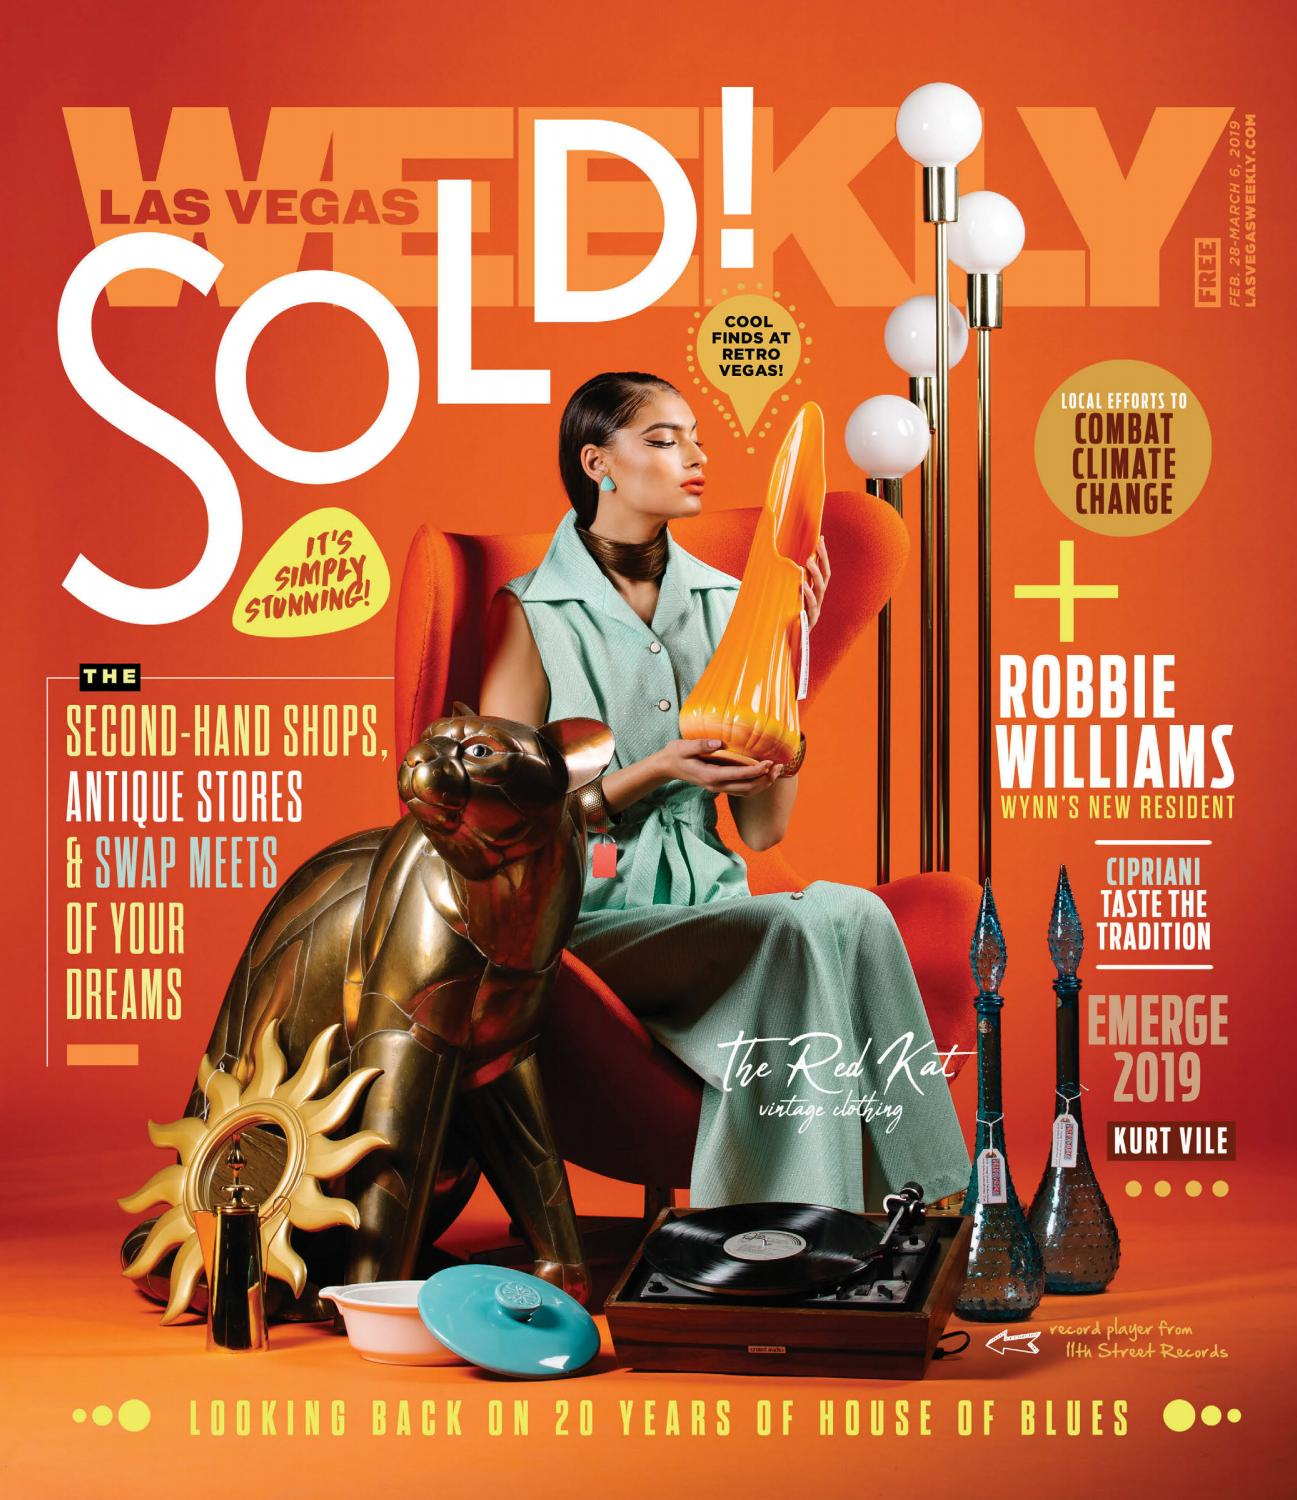 94491f8b4f2f 2019-02-28 - Las Vegas Weekly by Greenspun Media Group - issuu